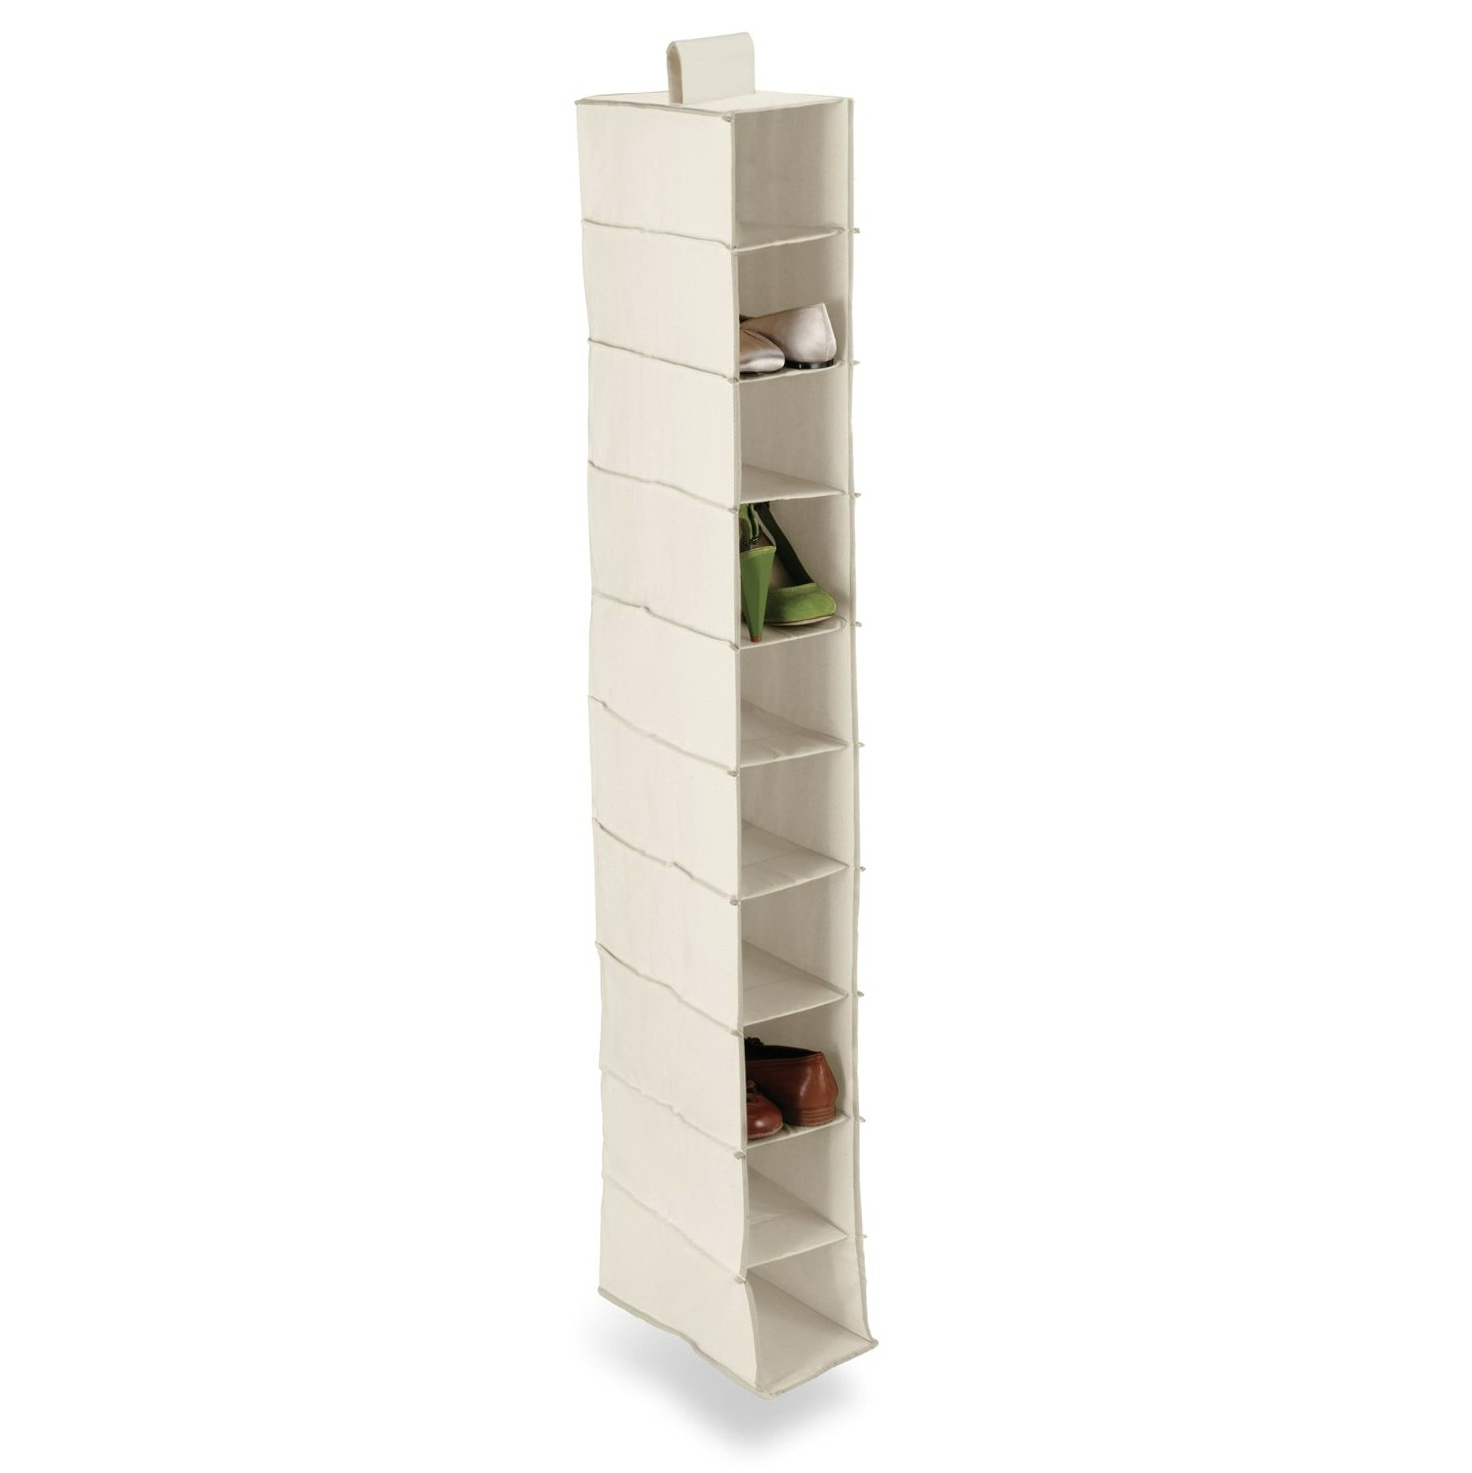 Hanging Shoe Rack For Closet